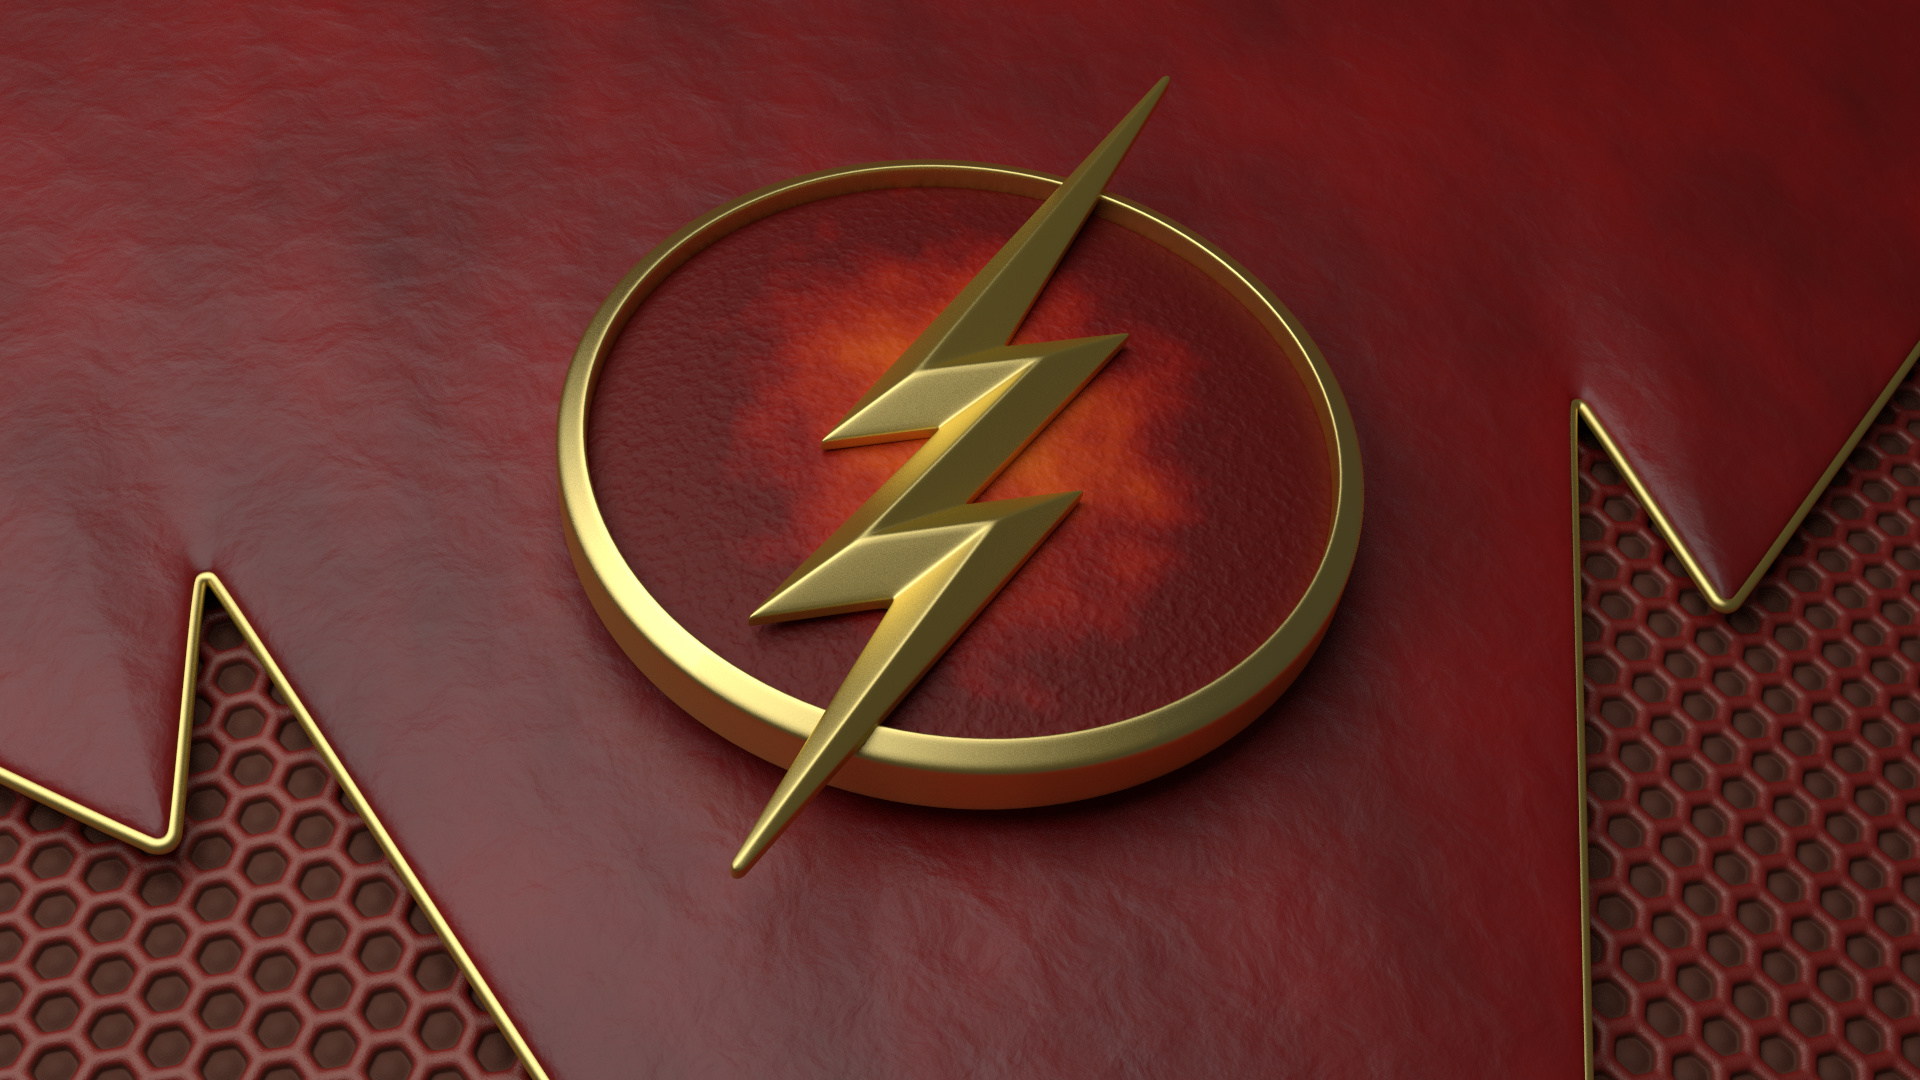 Flash Wallpaper Mobile Is Cool.